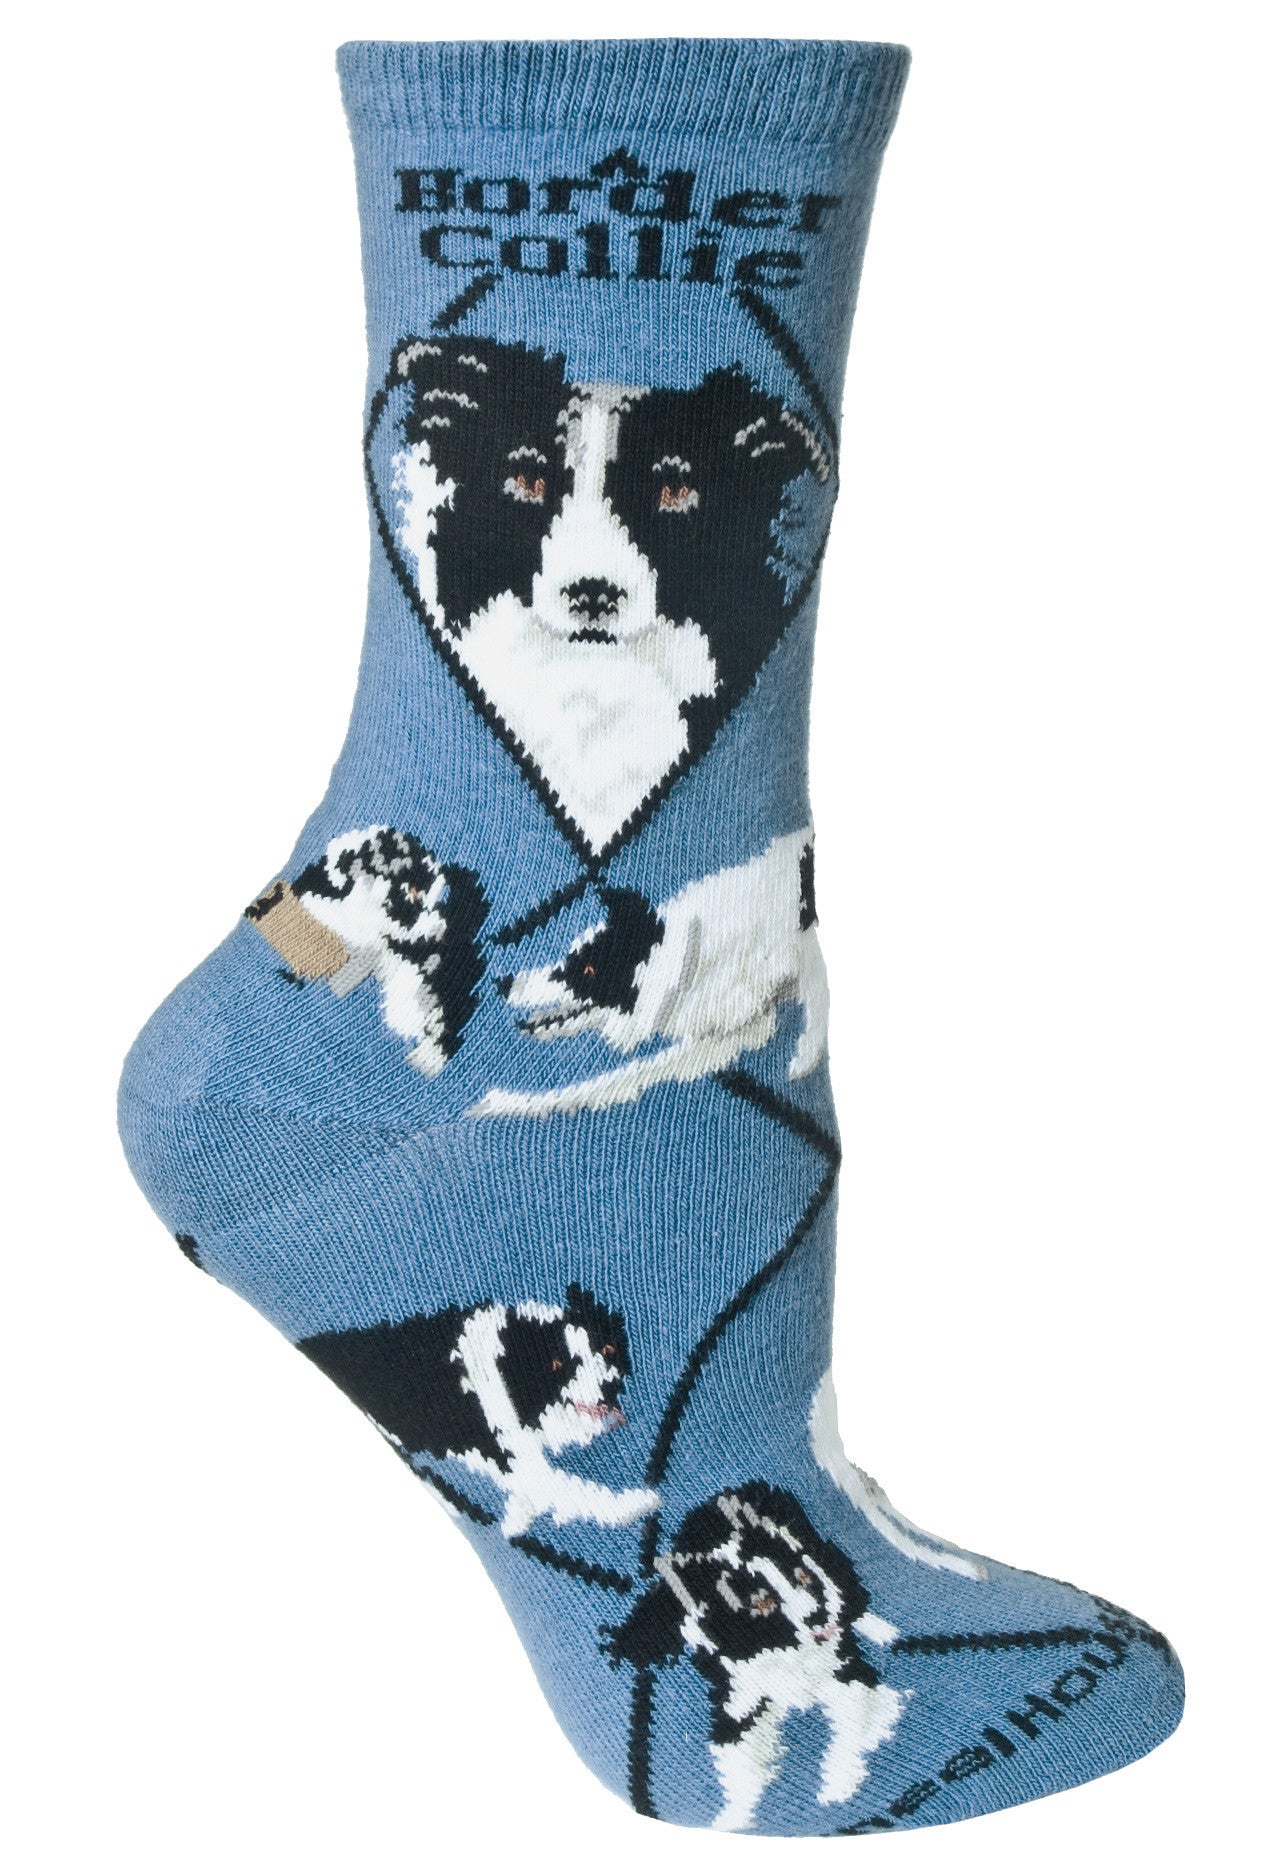 Border Collie Crew Socks on Blue